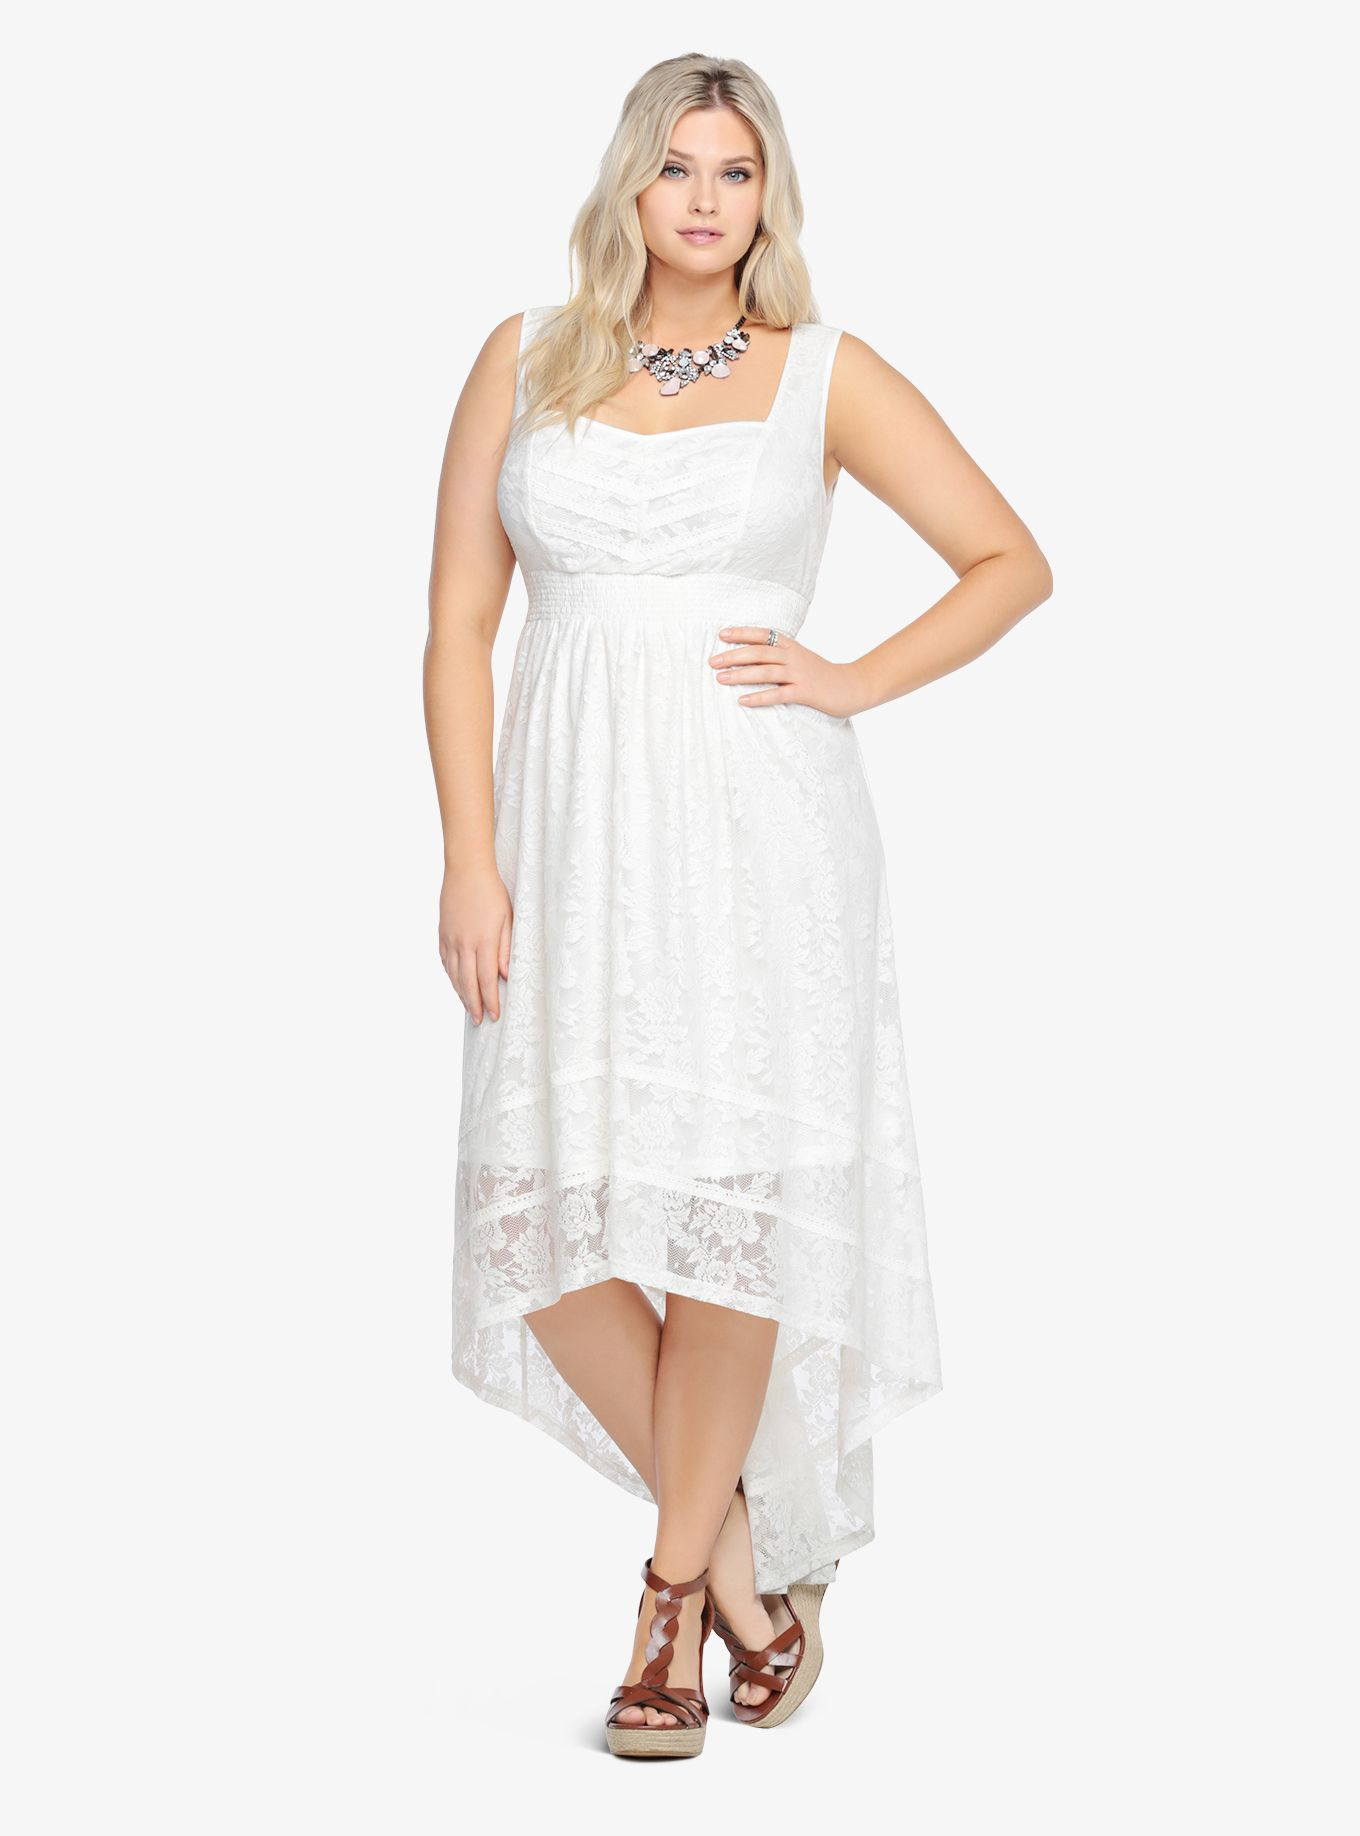 Lace Hi-Lo Dress | Torrid plus sized clothes. I love the fit and ...